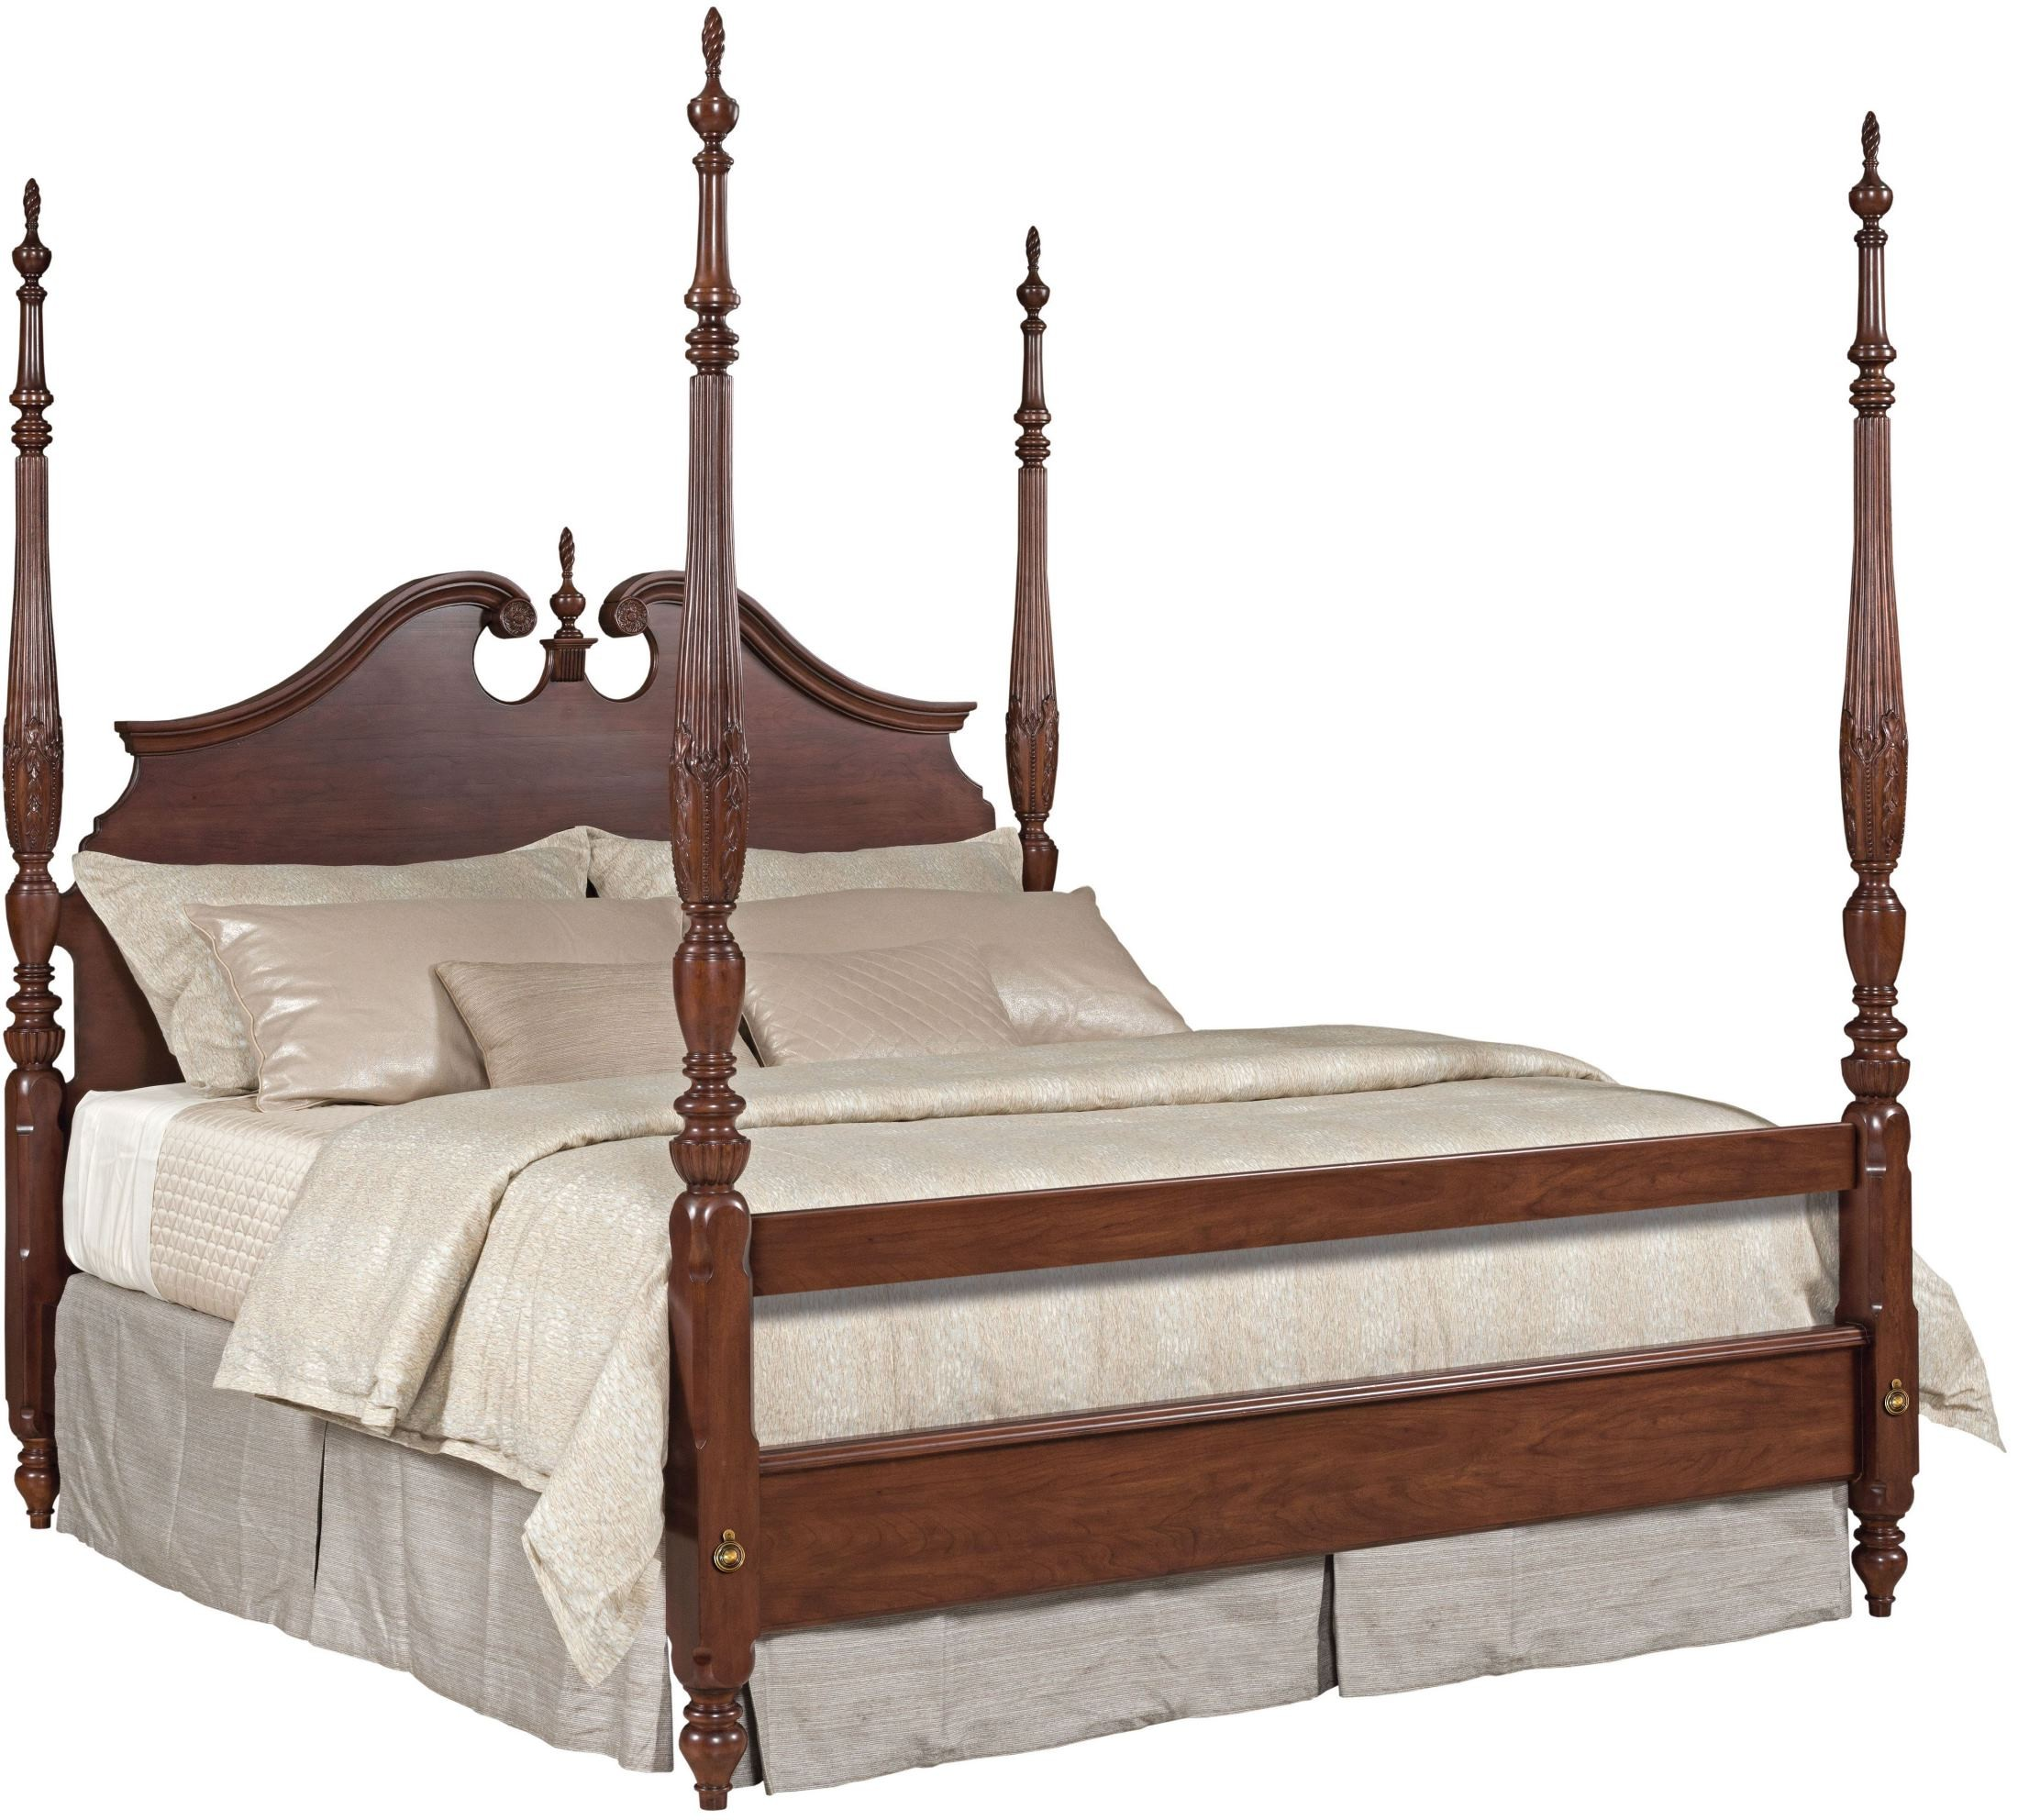 Four Poster Queen Size Bed Hadleigh Rice Carved King Poster Bed From Kincaid